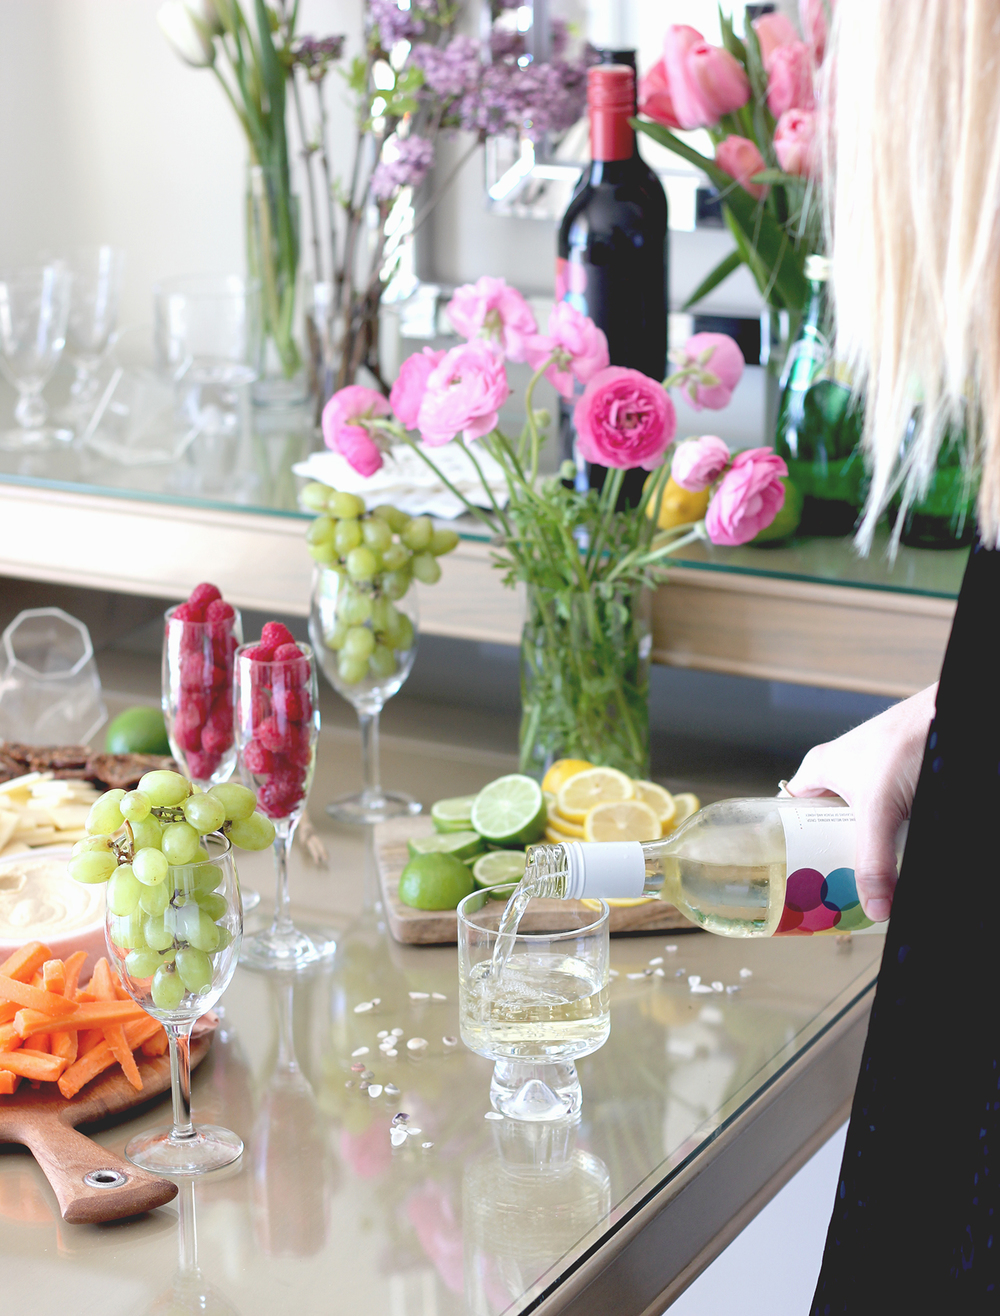 Spa day spread - veggies + fruit... and wine! | A Fabulous Fete